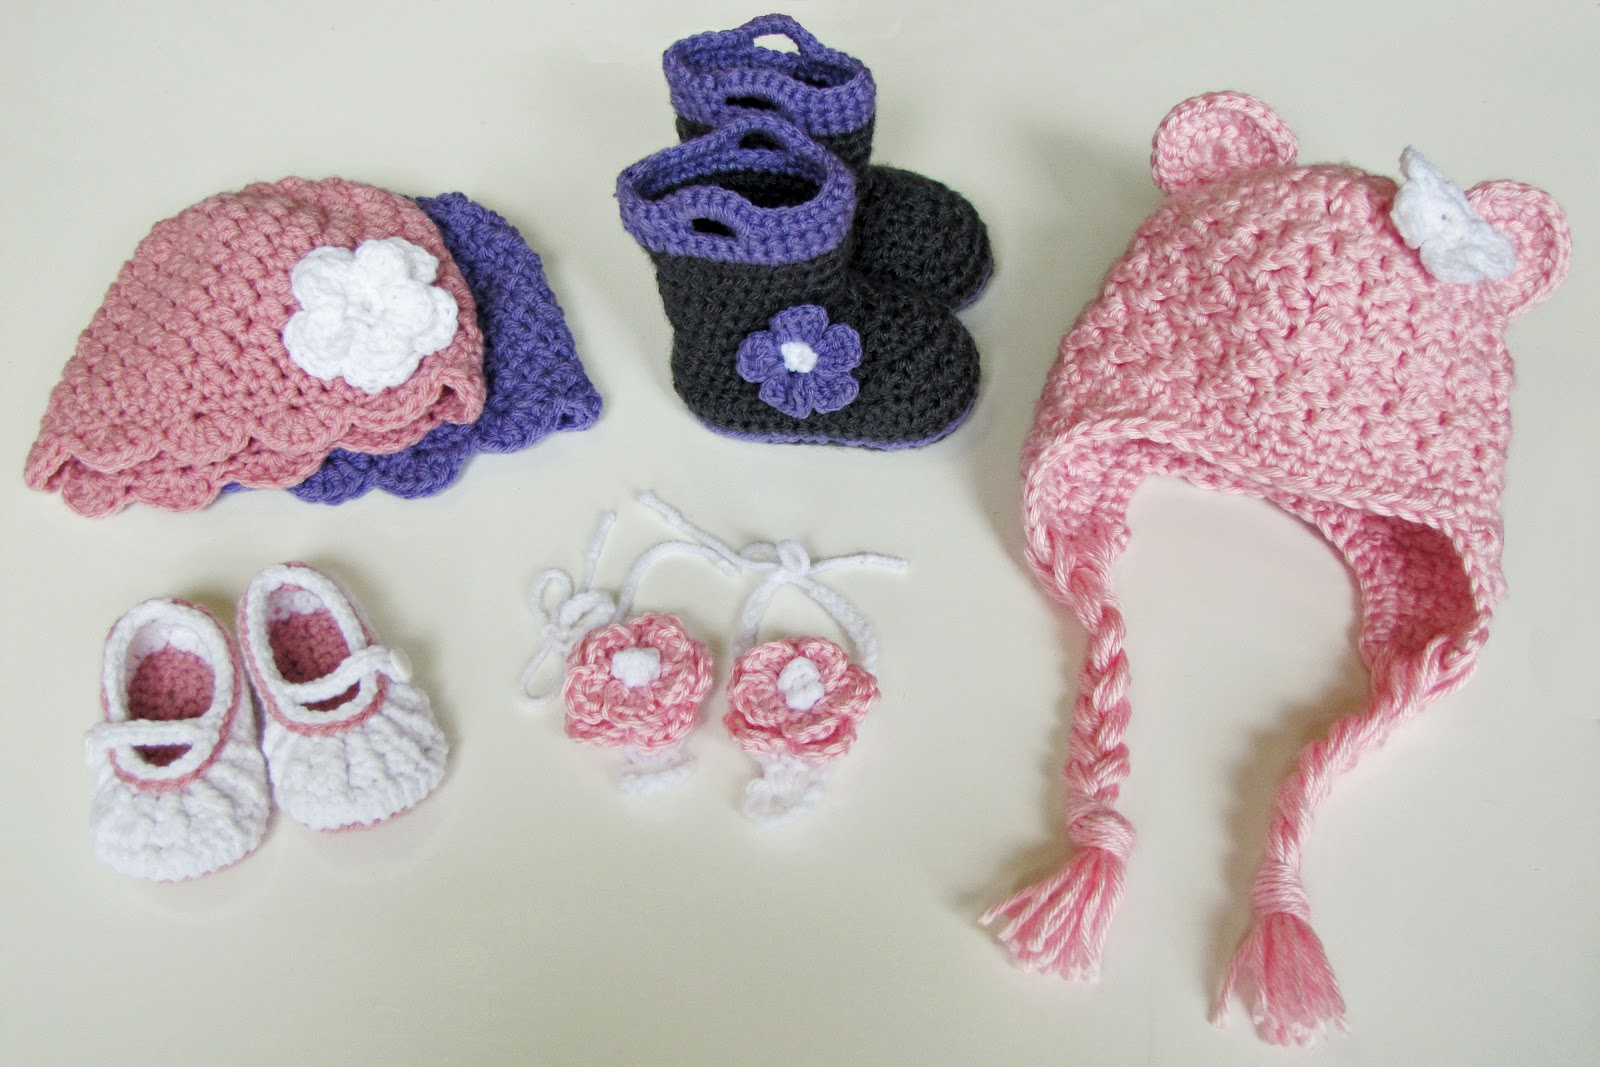 Crocheting Stuff : The Daily Pinner: Pin #29 Crocheted Baby Stuff